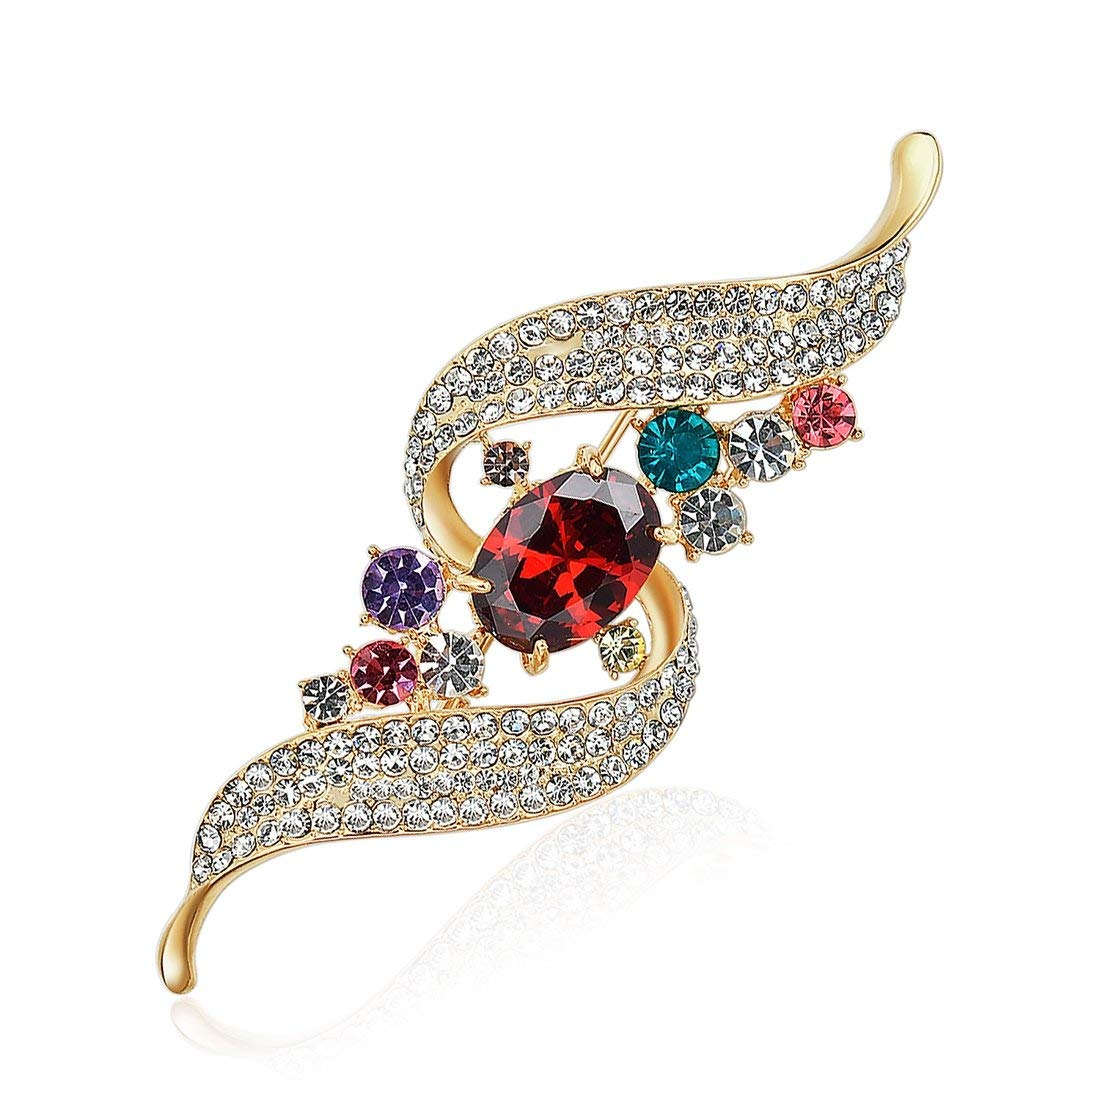 Designs Personalized Decorative Luxury Rhinestone Brooch Leaves Multicolor Retro Brooches Wholesale Jewelry Gift-in Brooches